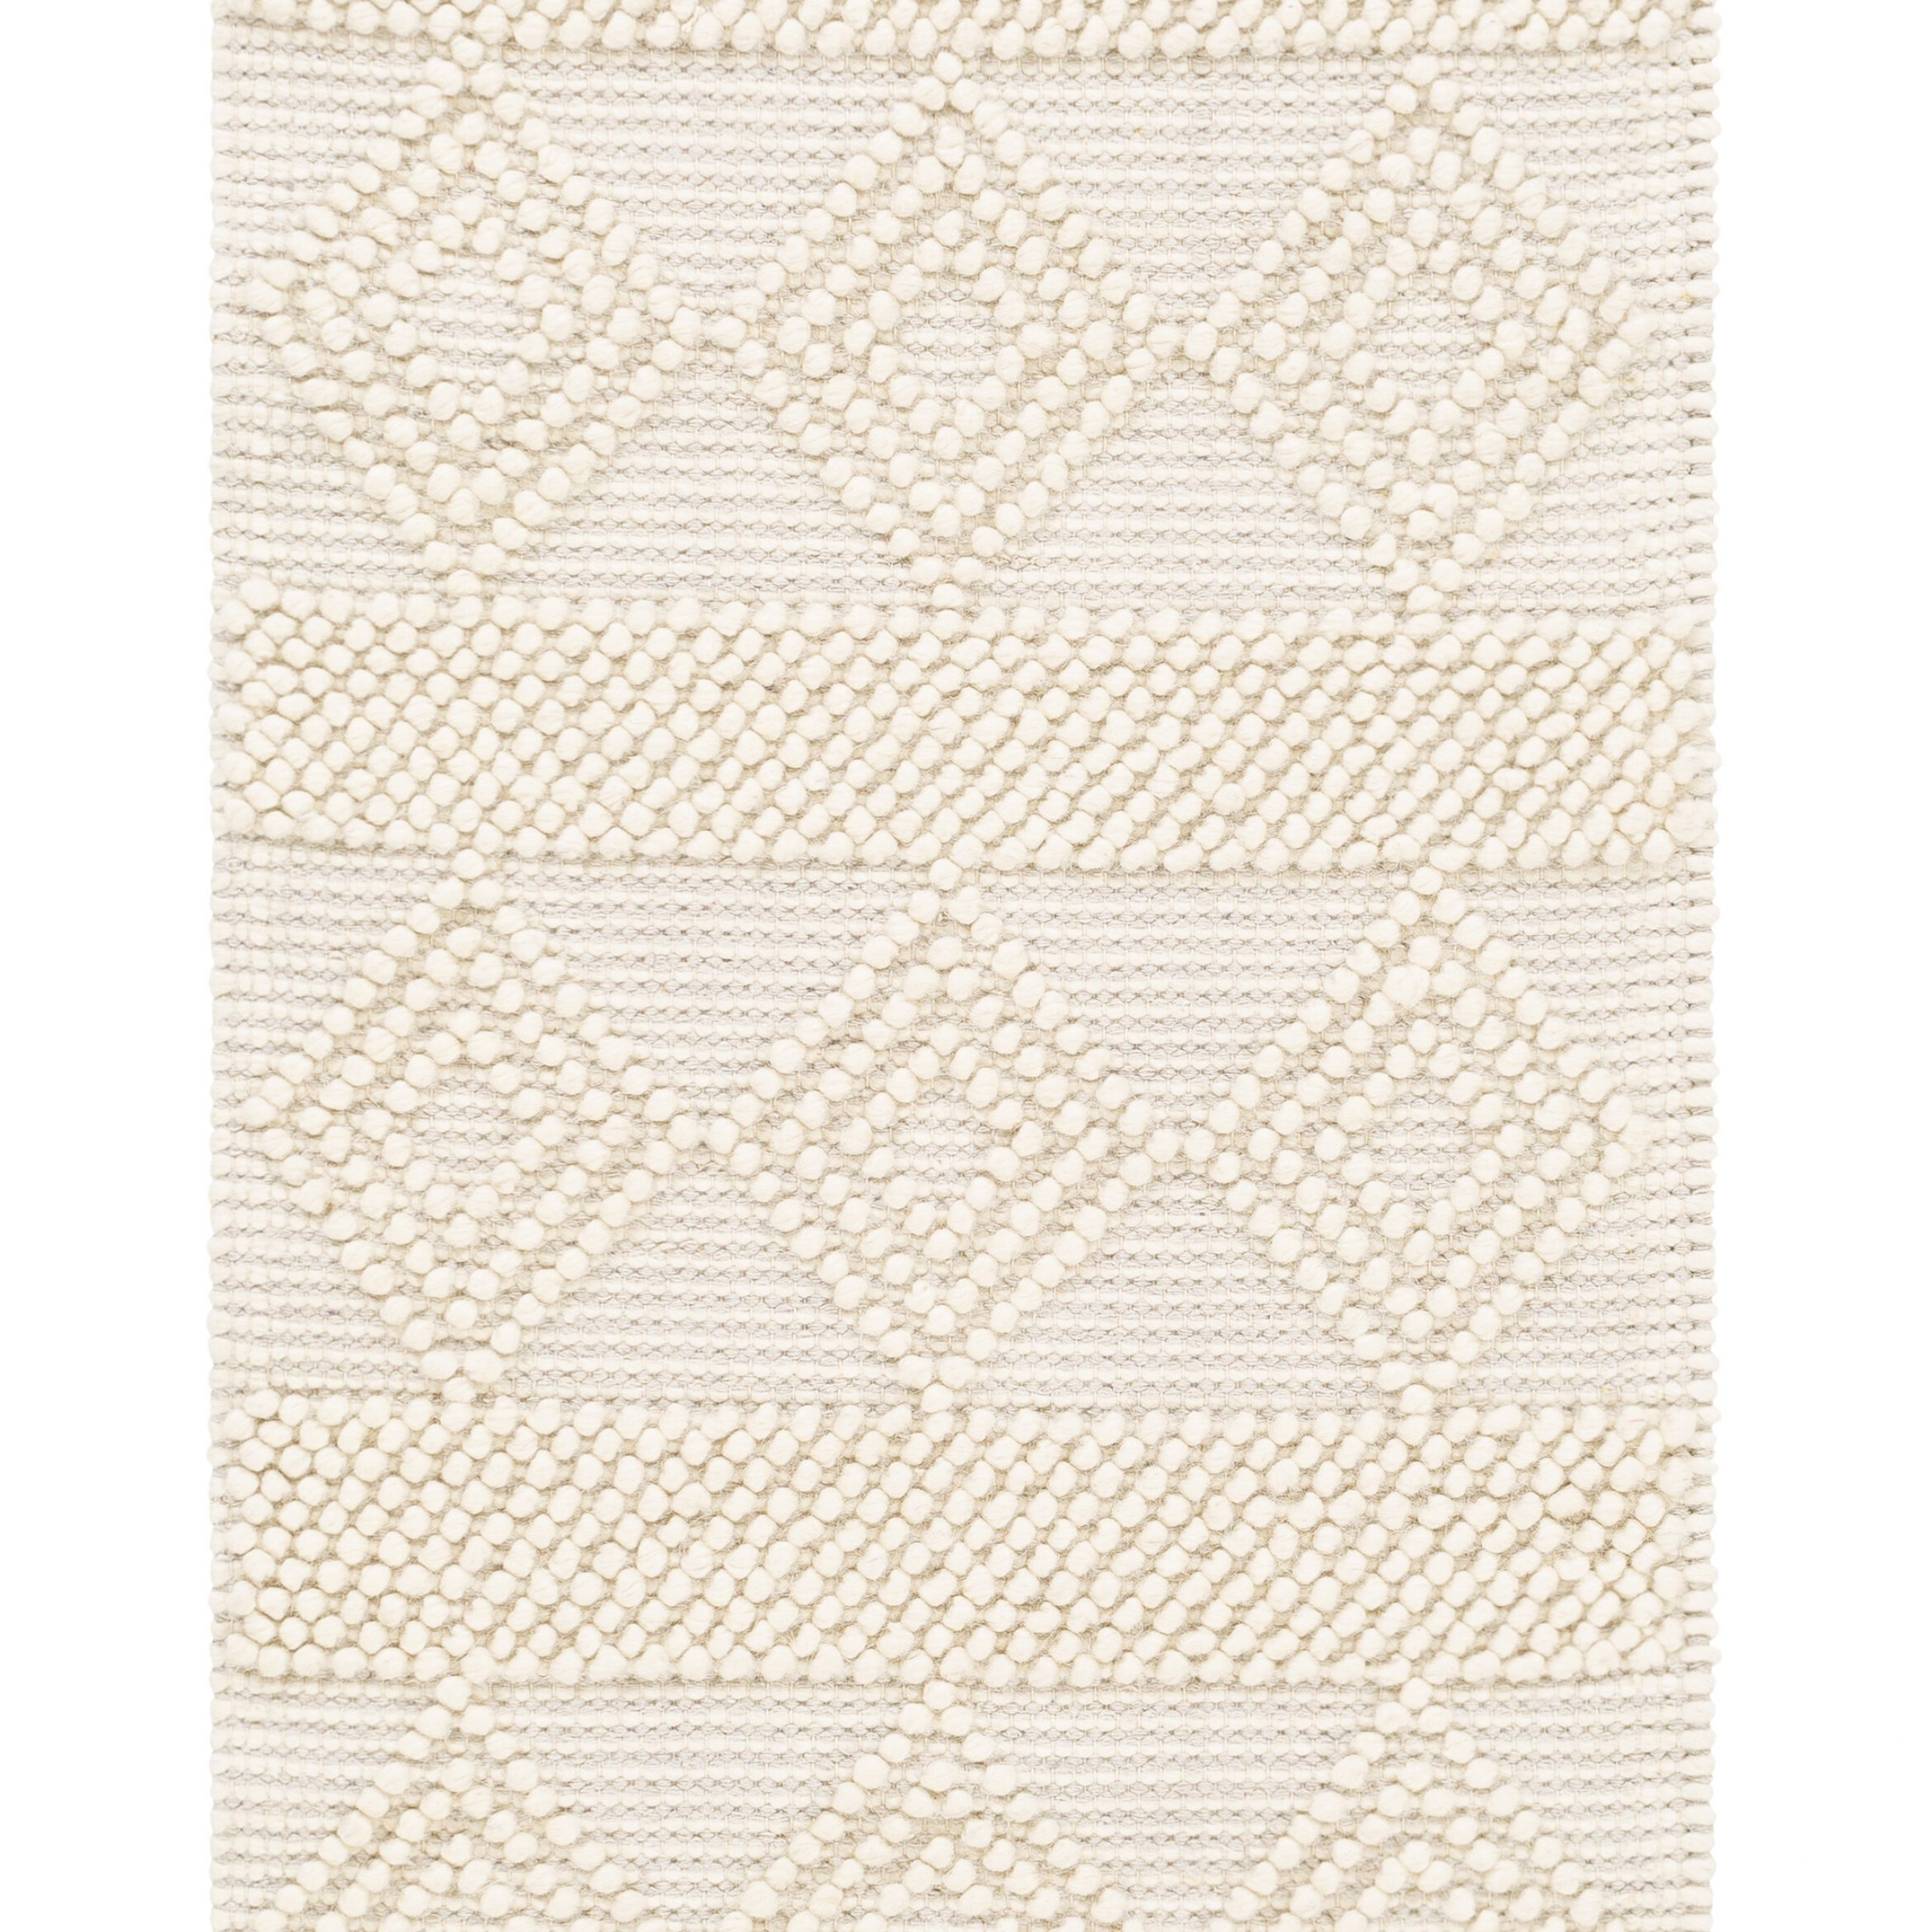 Union Rustic Clancy Wool And Cotton Wall Hanging With Regarding 2018 Blended Fabric Clancy Wool And Cotton Wall Hangings With Hanging Accessories Included (View 3 of 20)